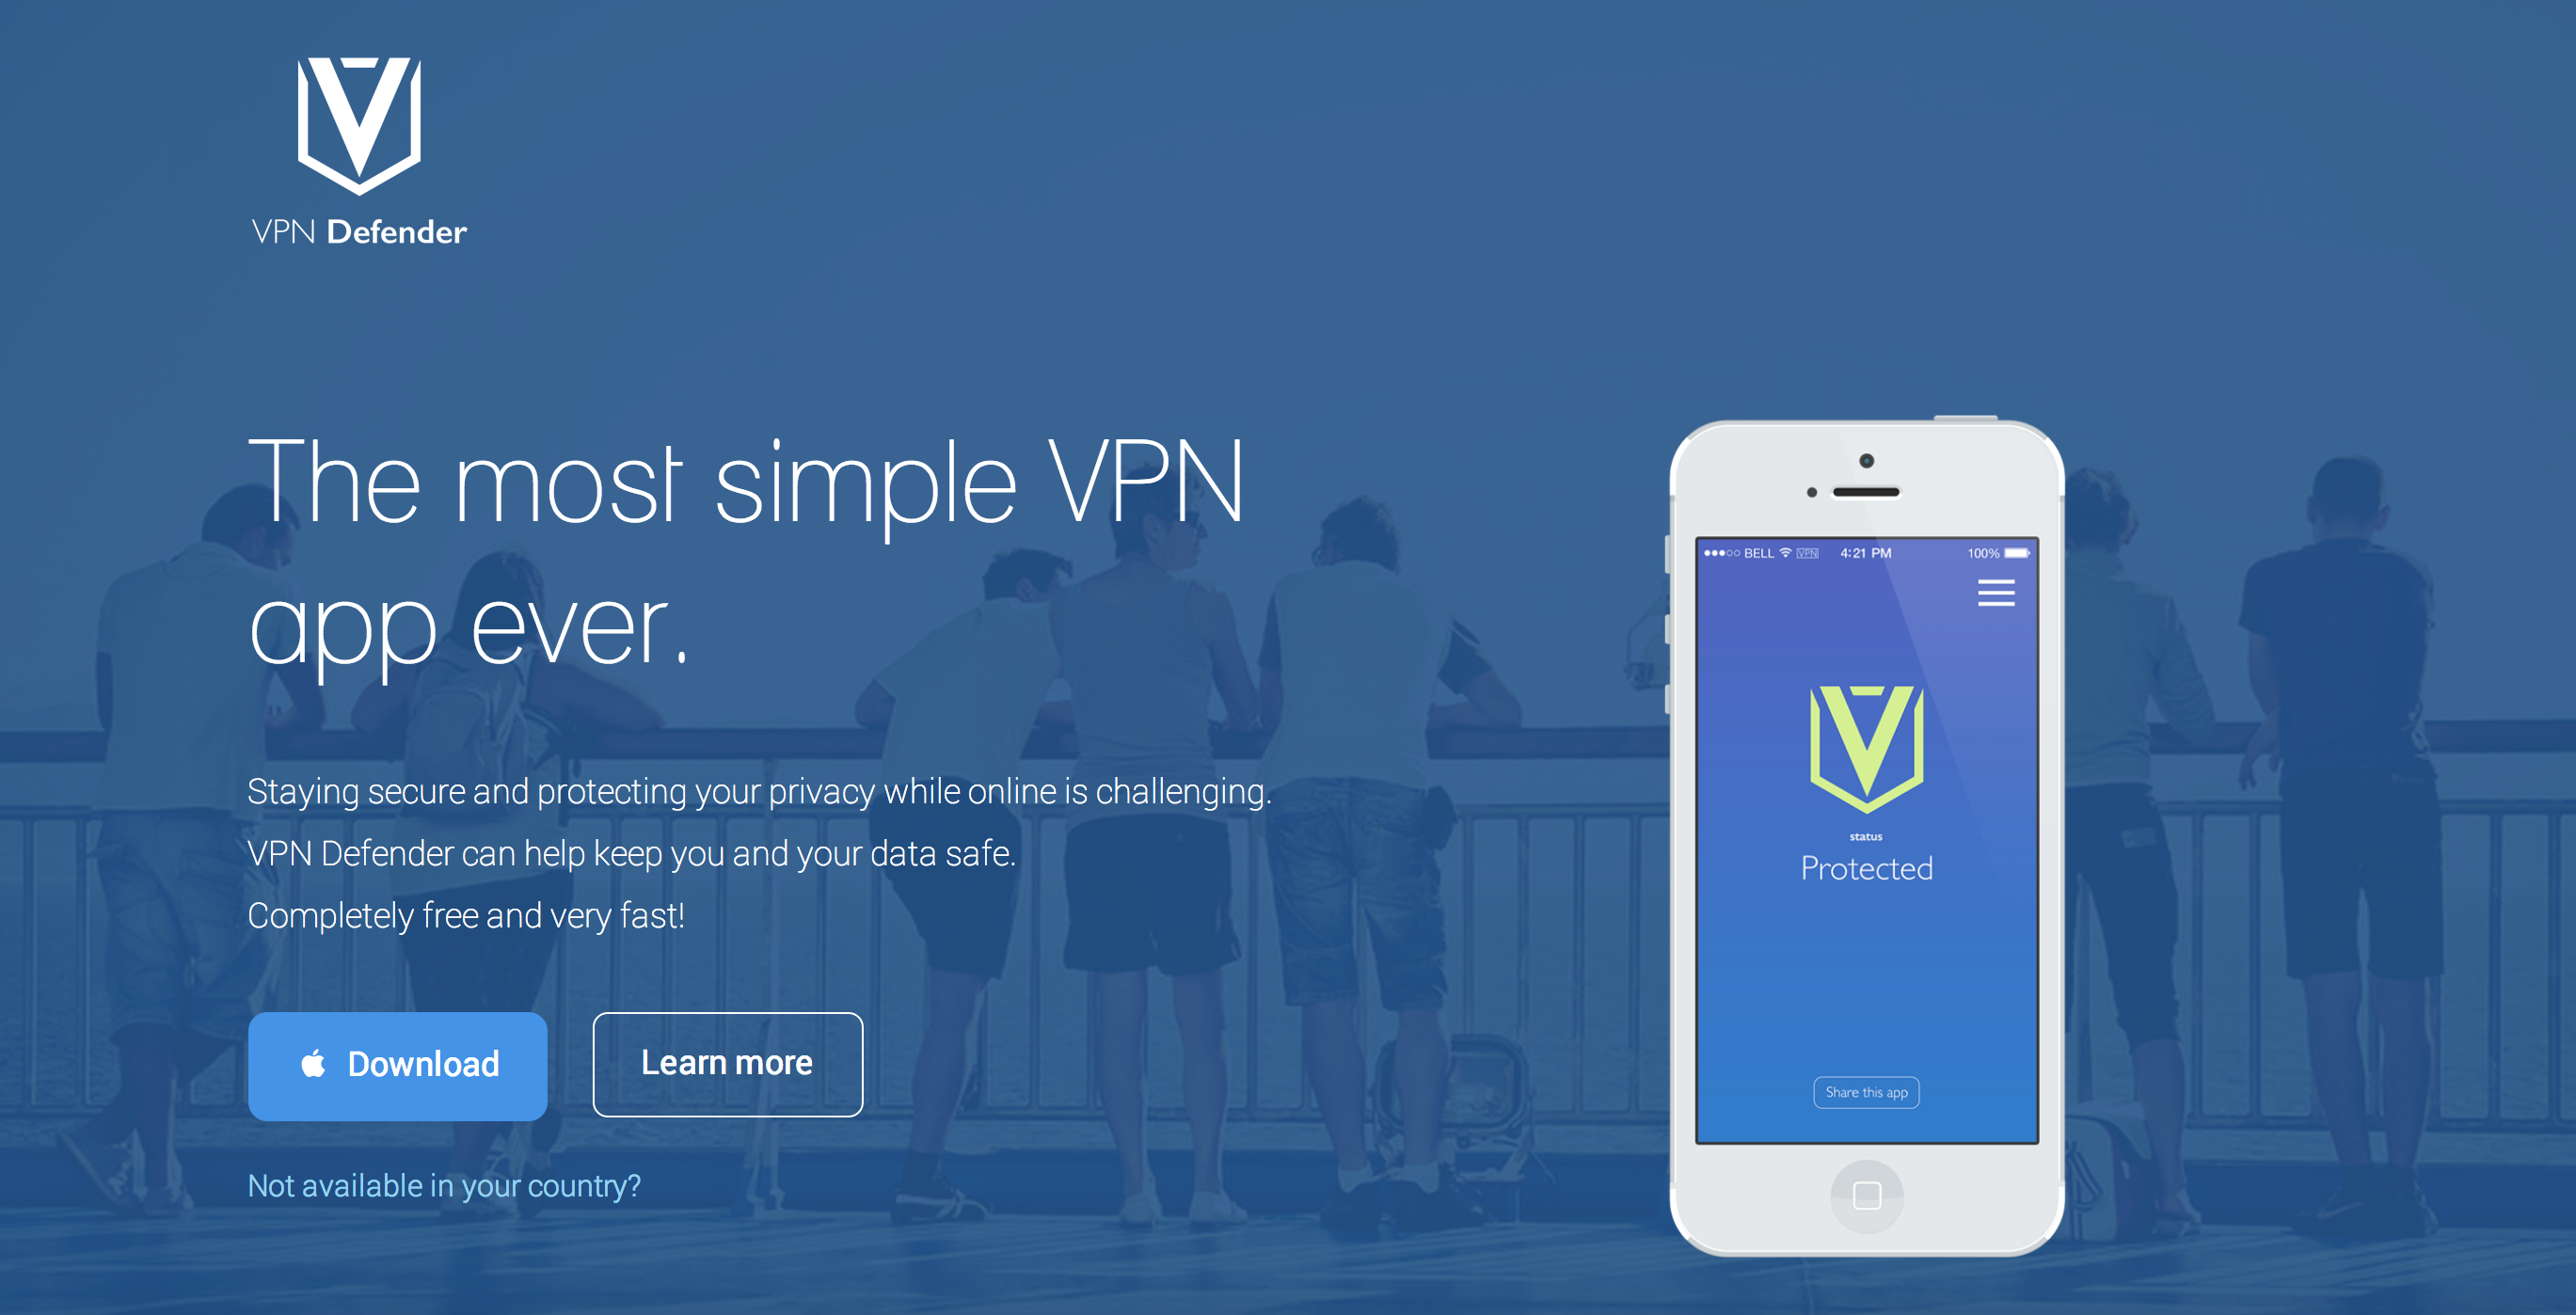 onavo vpn free how do they make money